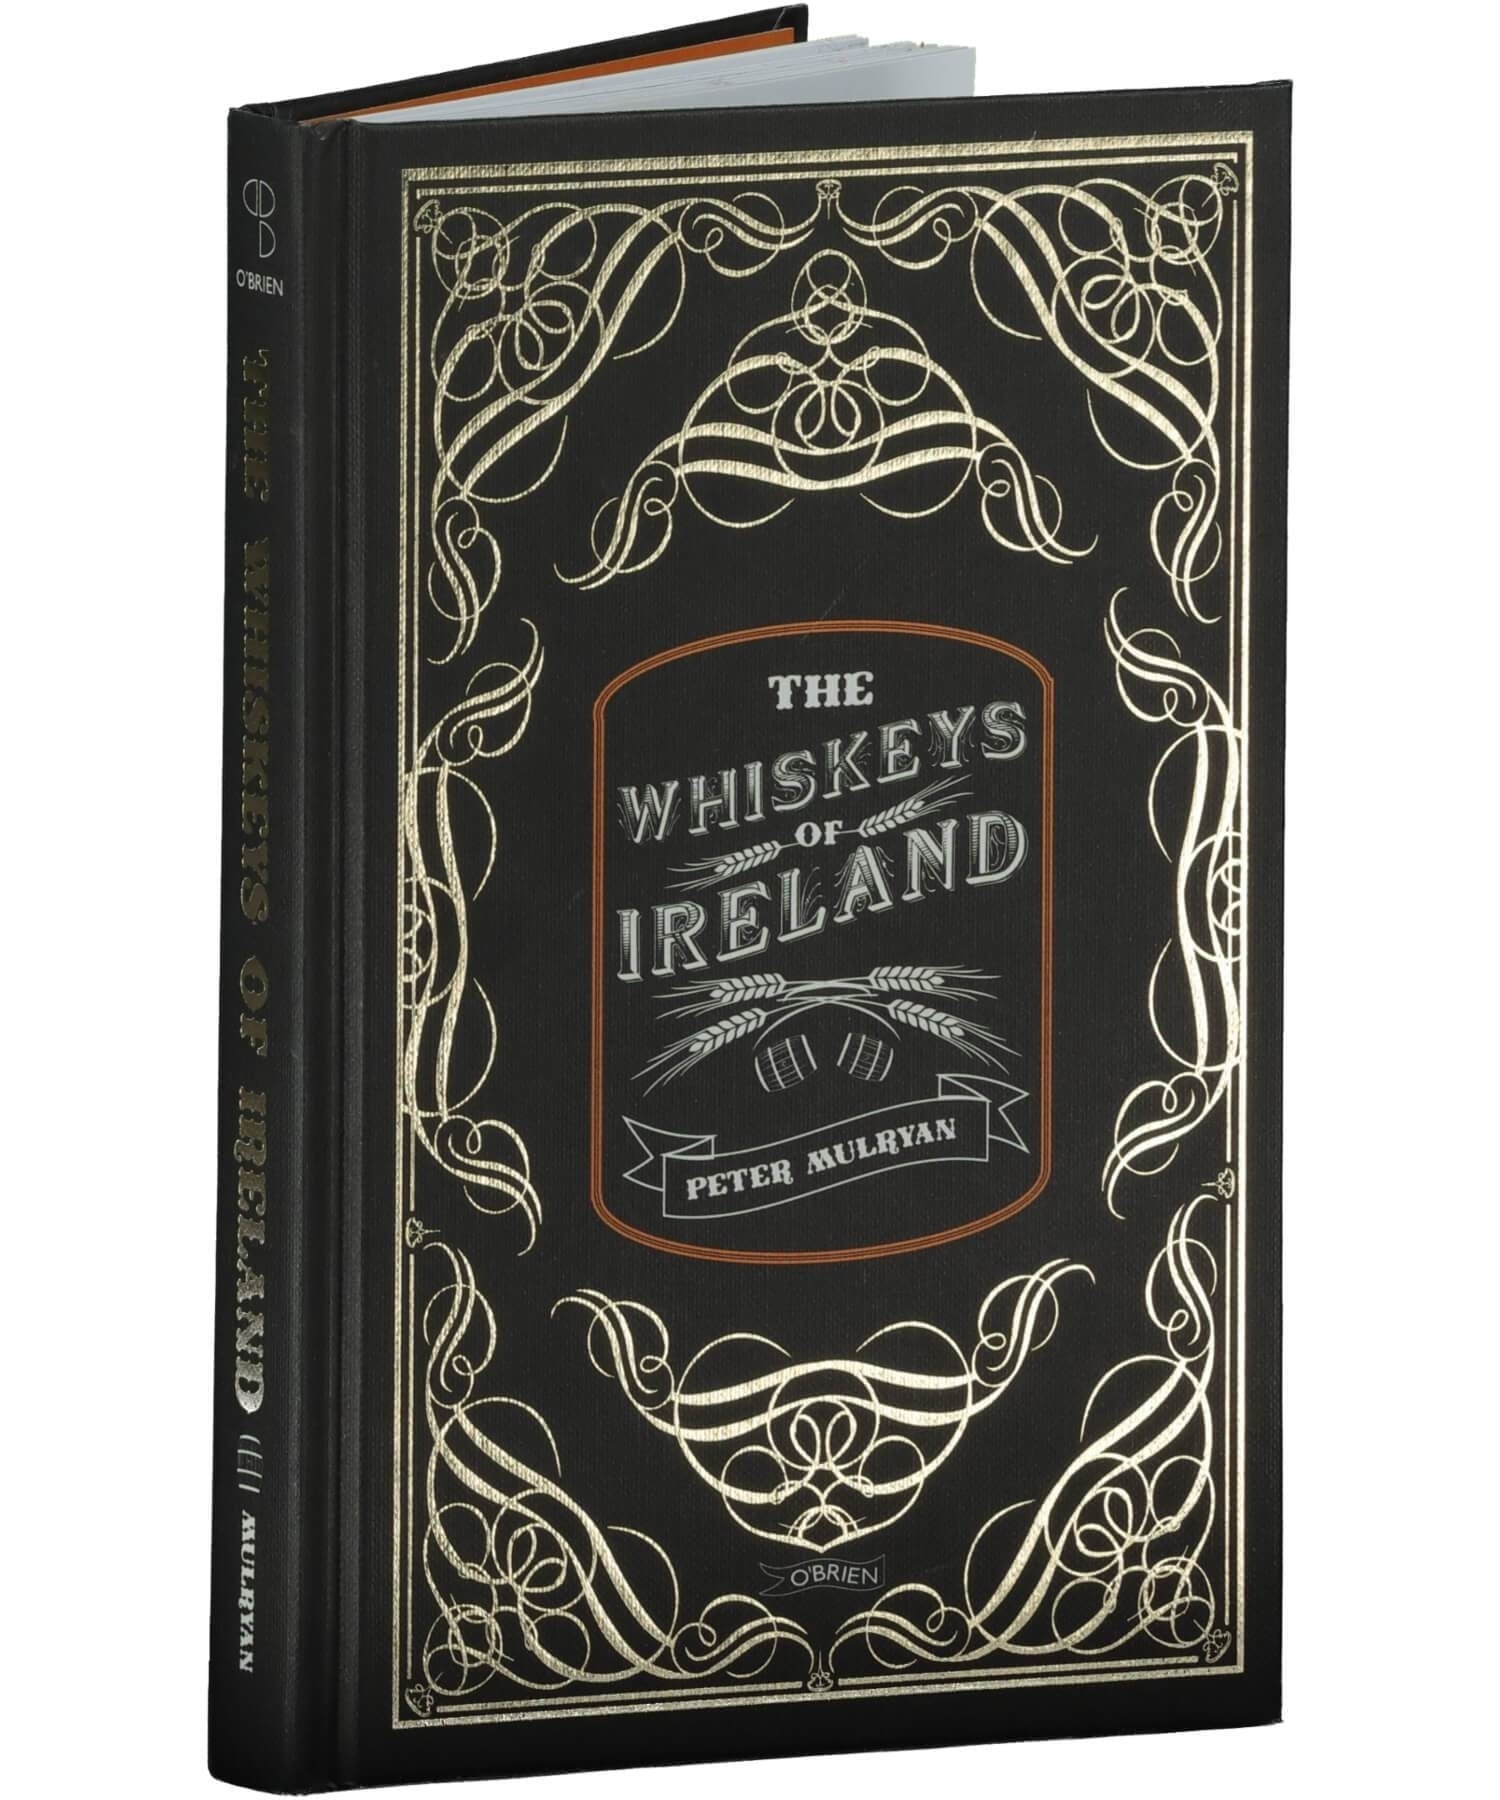 The Whiskeys of Ireland - [The O'Brien Press] - Books & Stationery - Irish Gifts